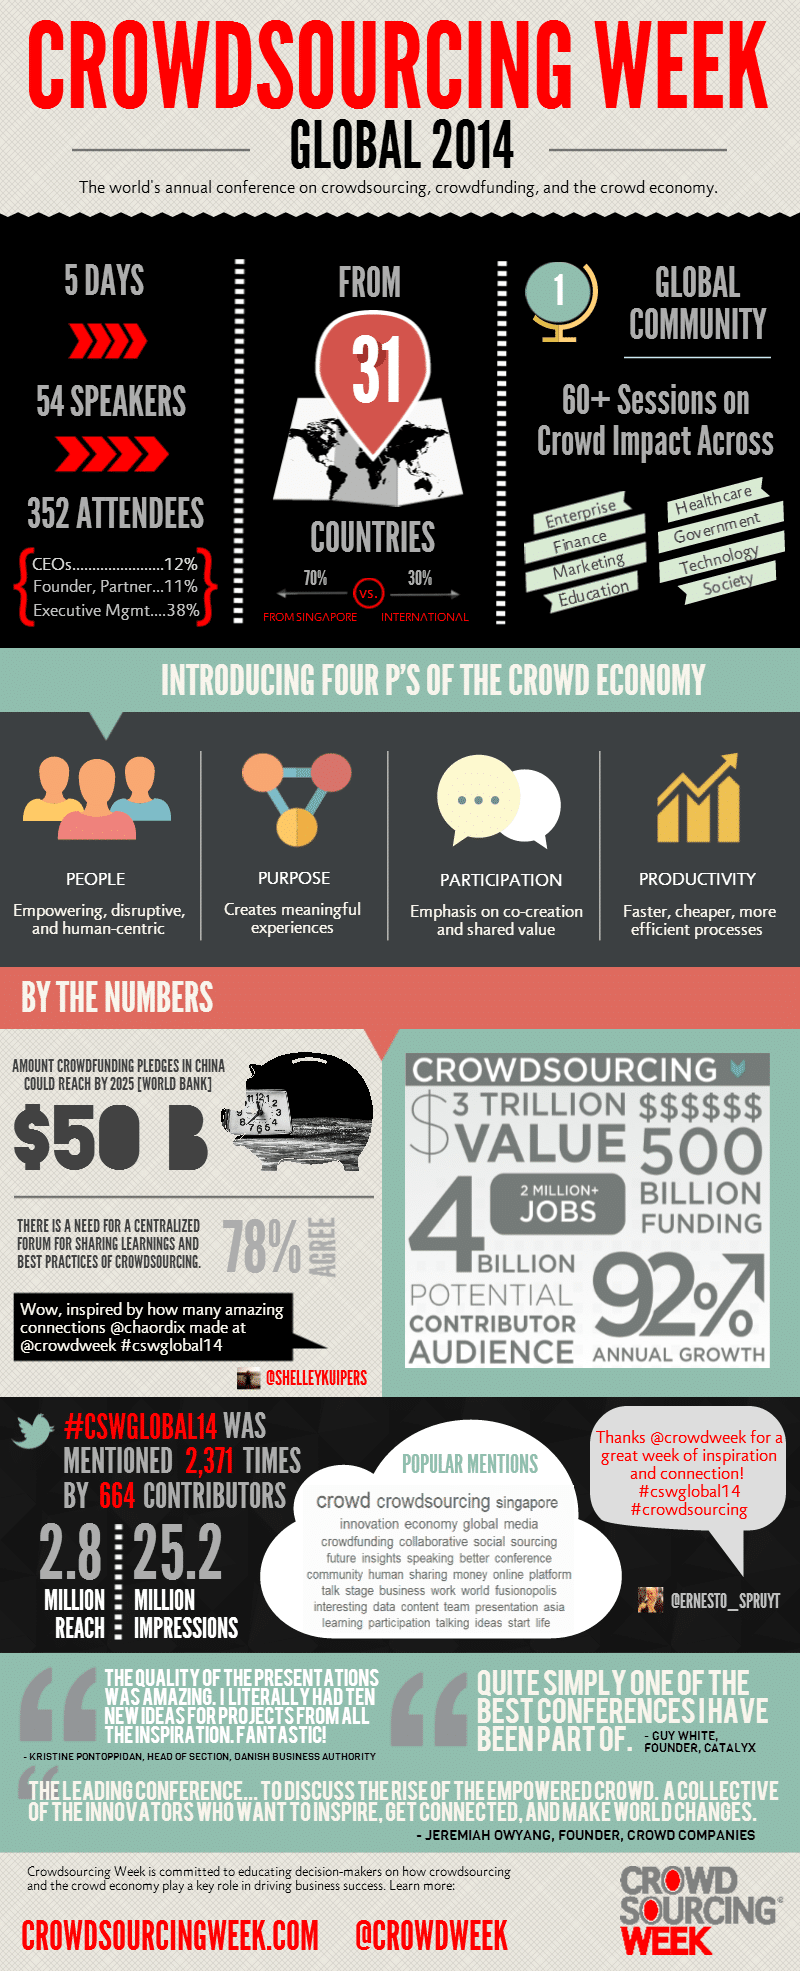 INFOGRAPHIC Crowdsourcing Week 2014